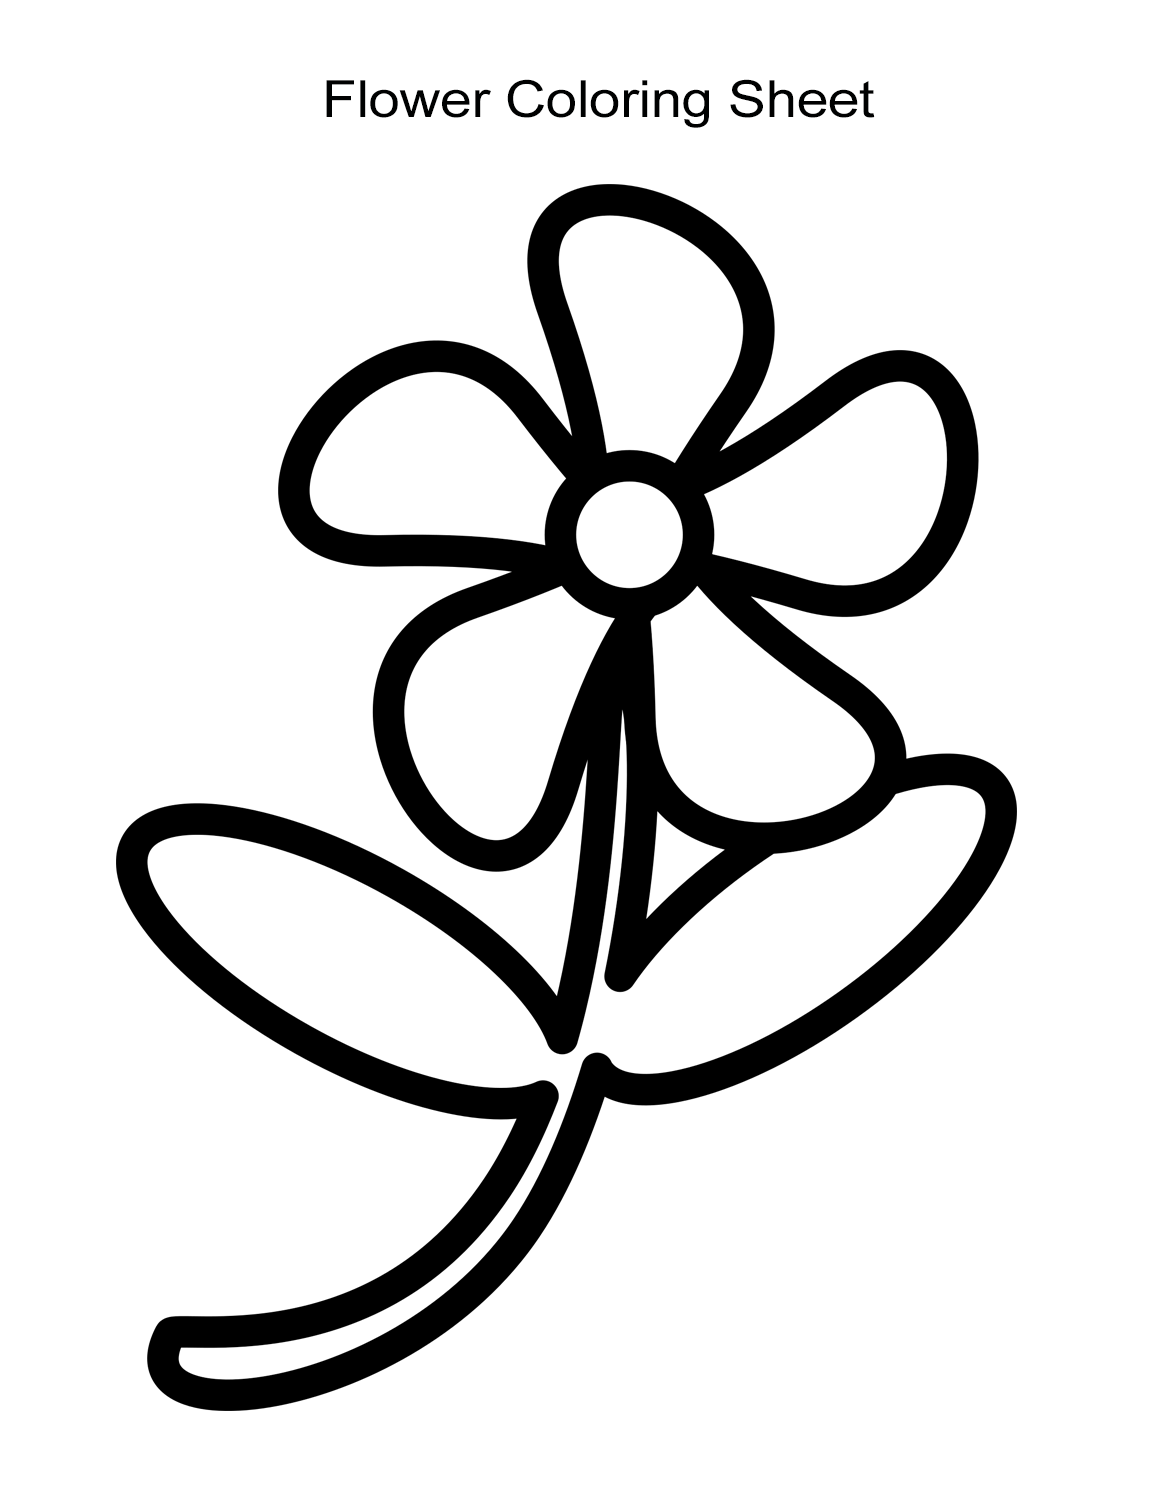 coloring pictures of a flower 10 flower coloring sheets for girls and boys all esl flower of coloring pictures a